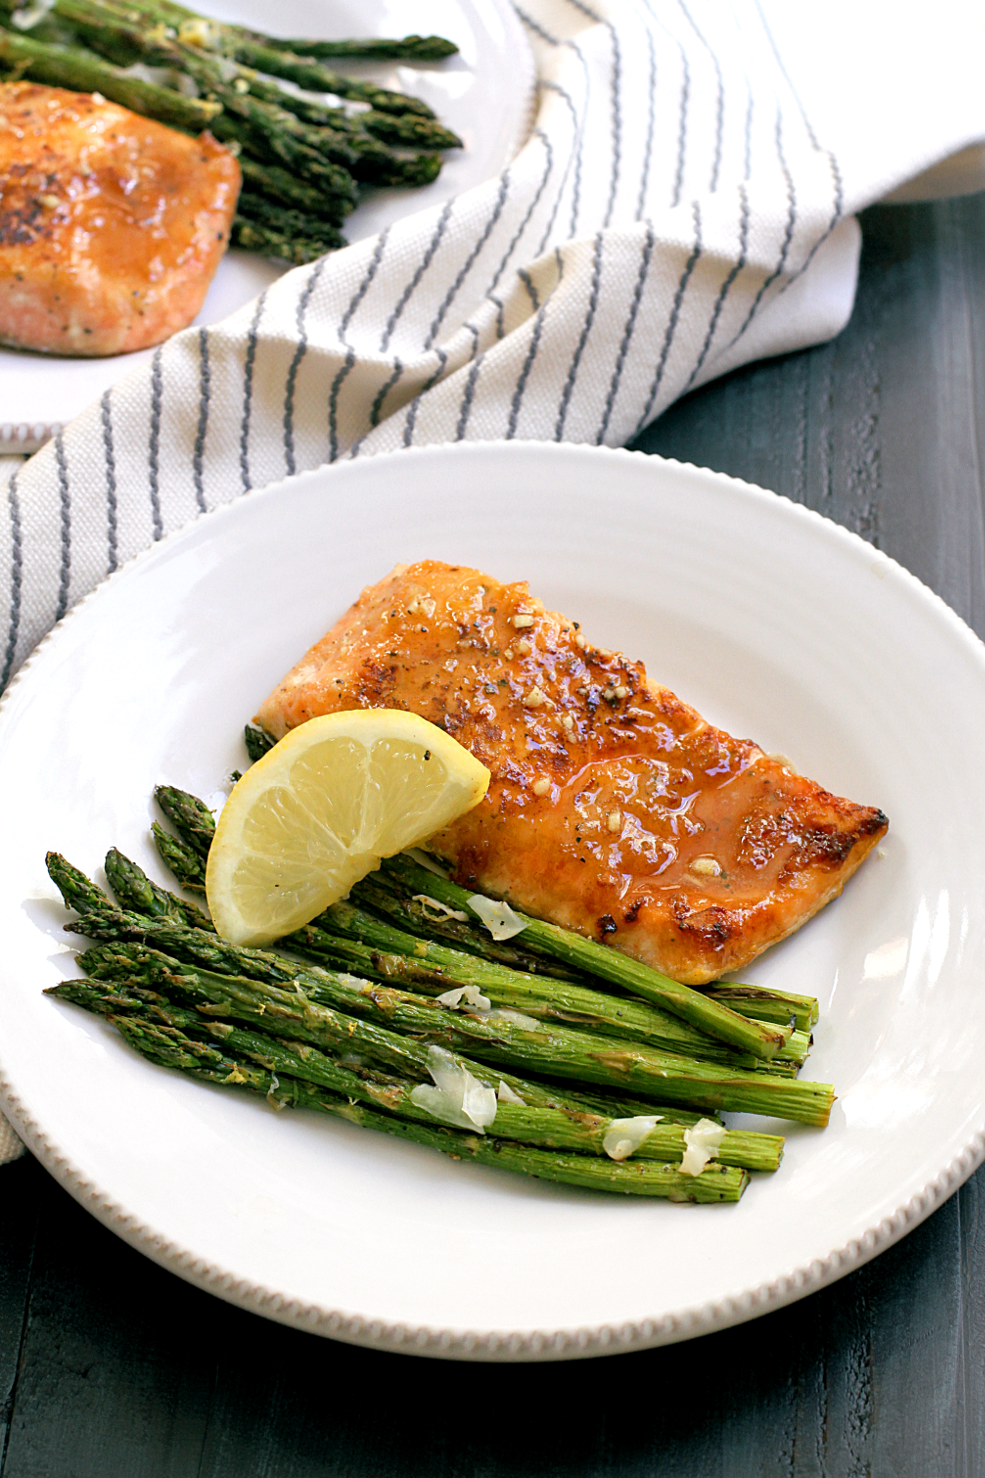 Honey-Glazed Salmon with Broiled Asparagus - Two of a Kind